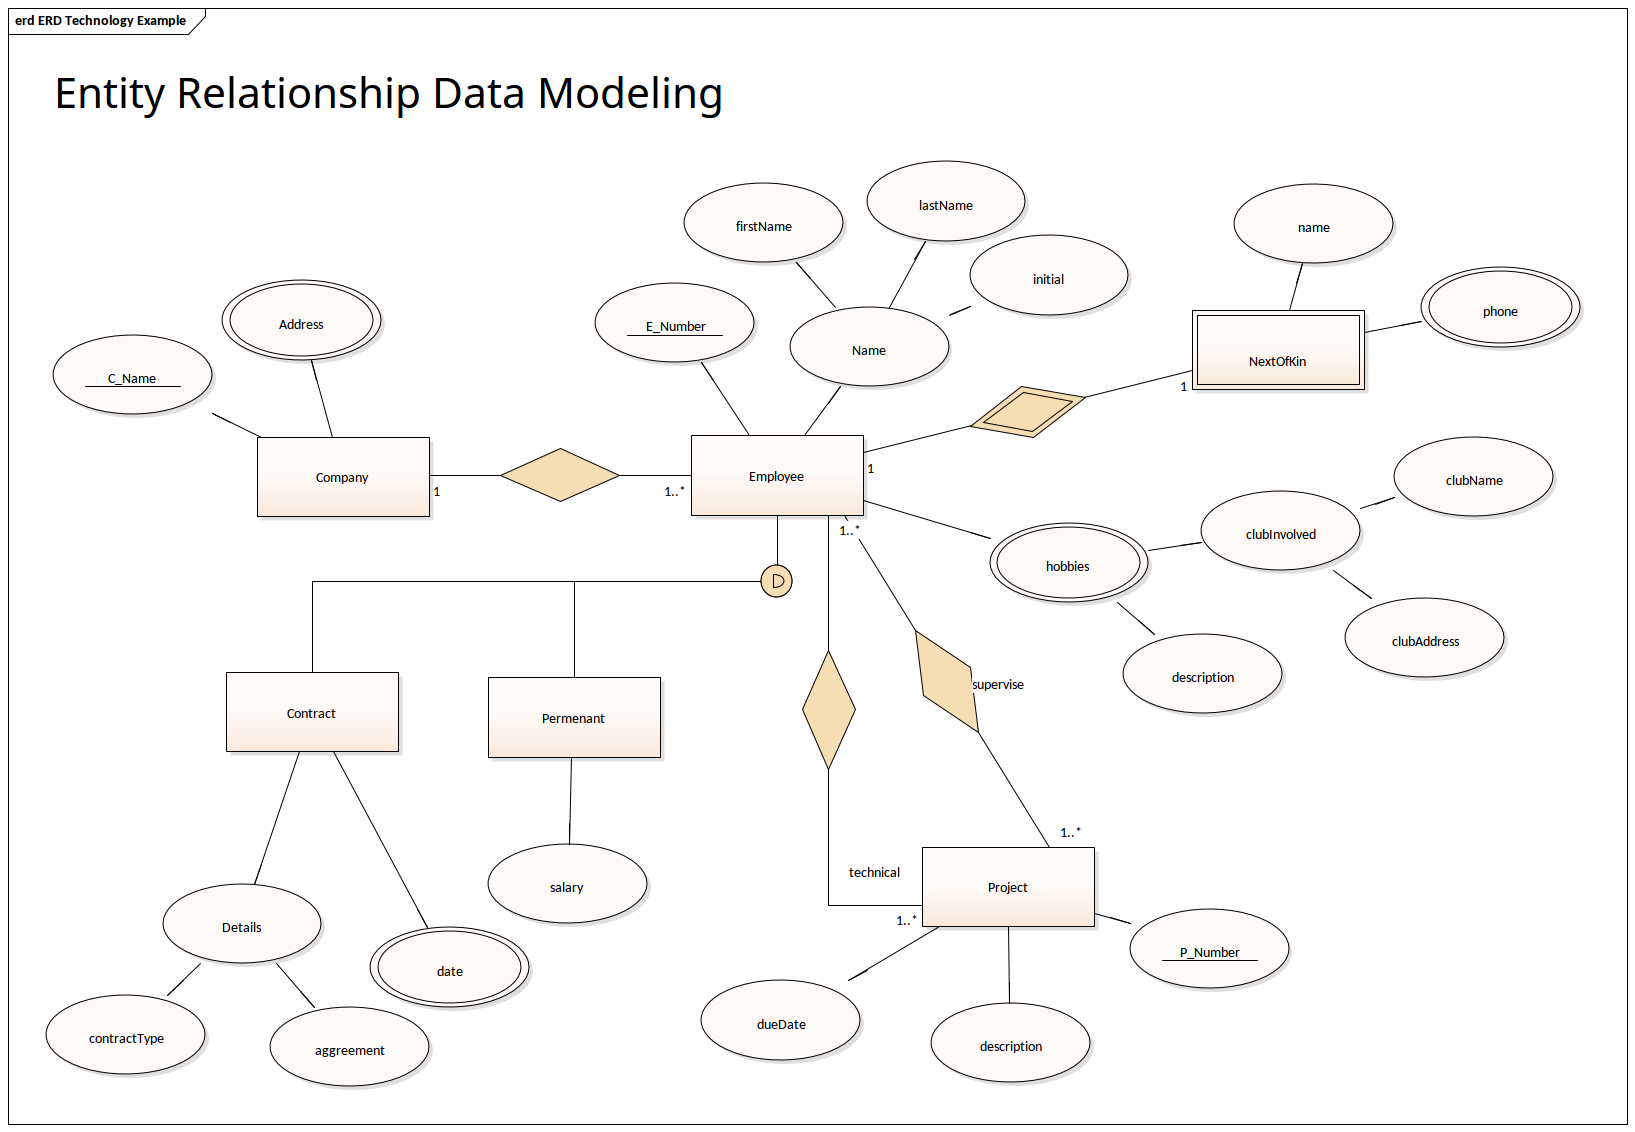 Entity Relationship Data Modeling | Enterprise Architect pertaining to Entity Model Relationship